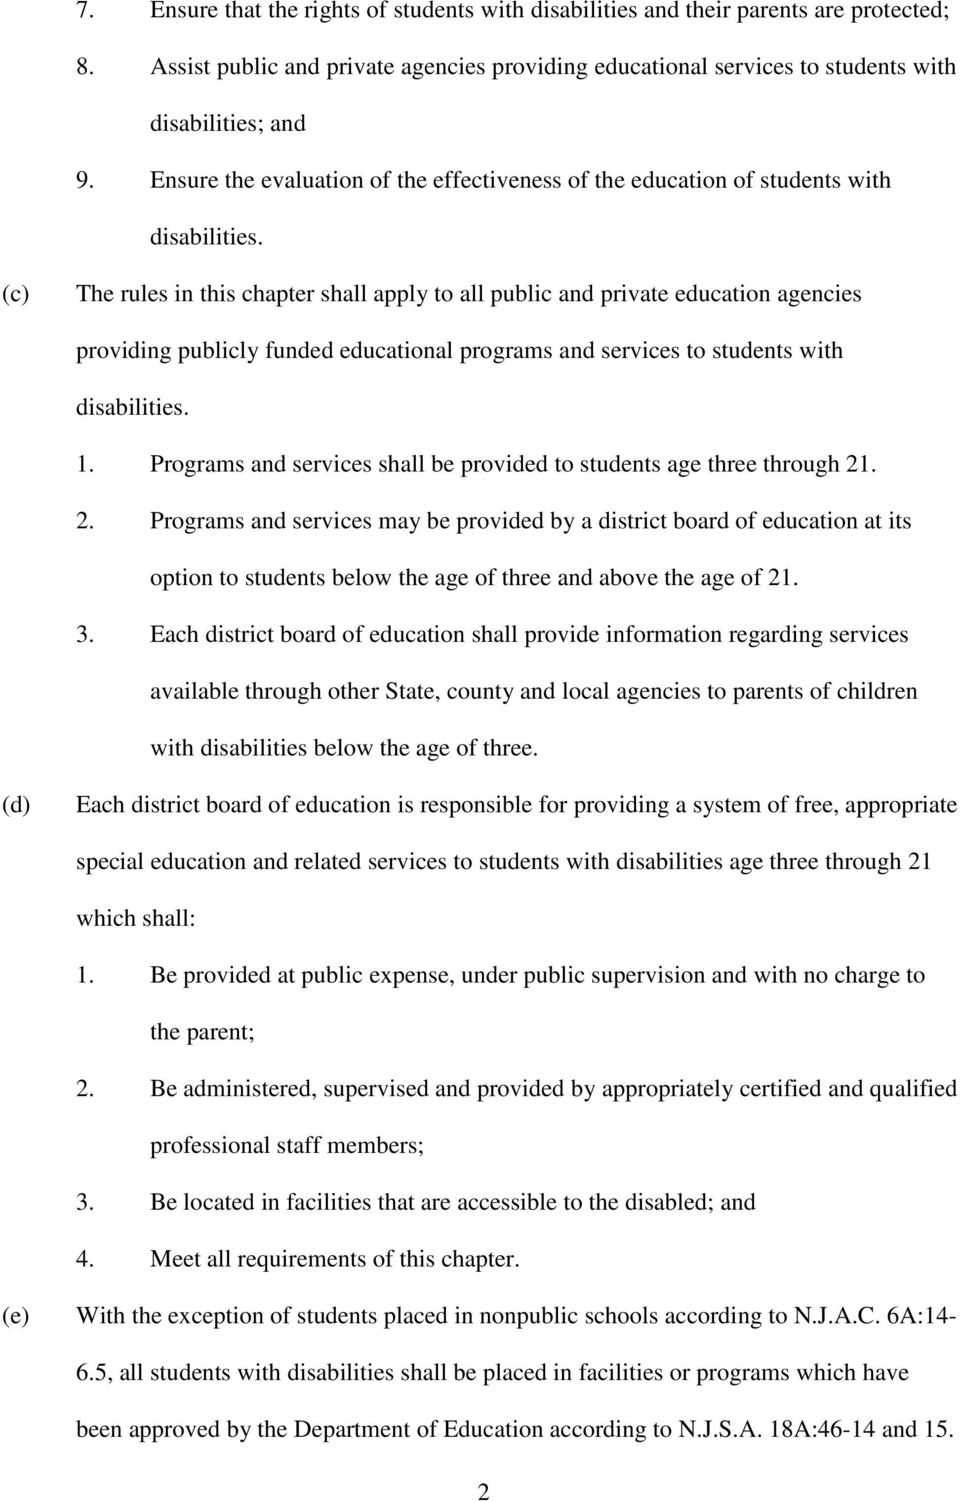 (c) The rules in this chapter shall apply to all public and private education agencies providing publicly funded educational programs and services to students with disabilities. 1.